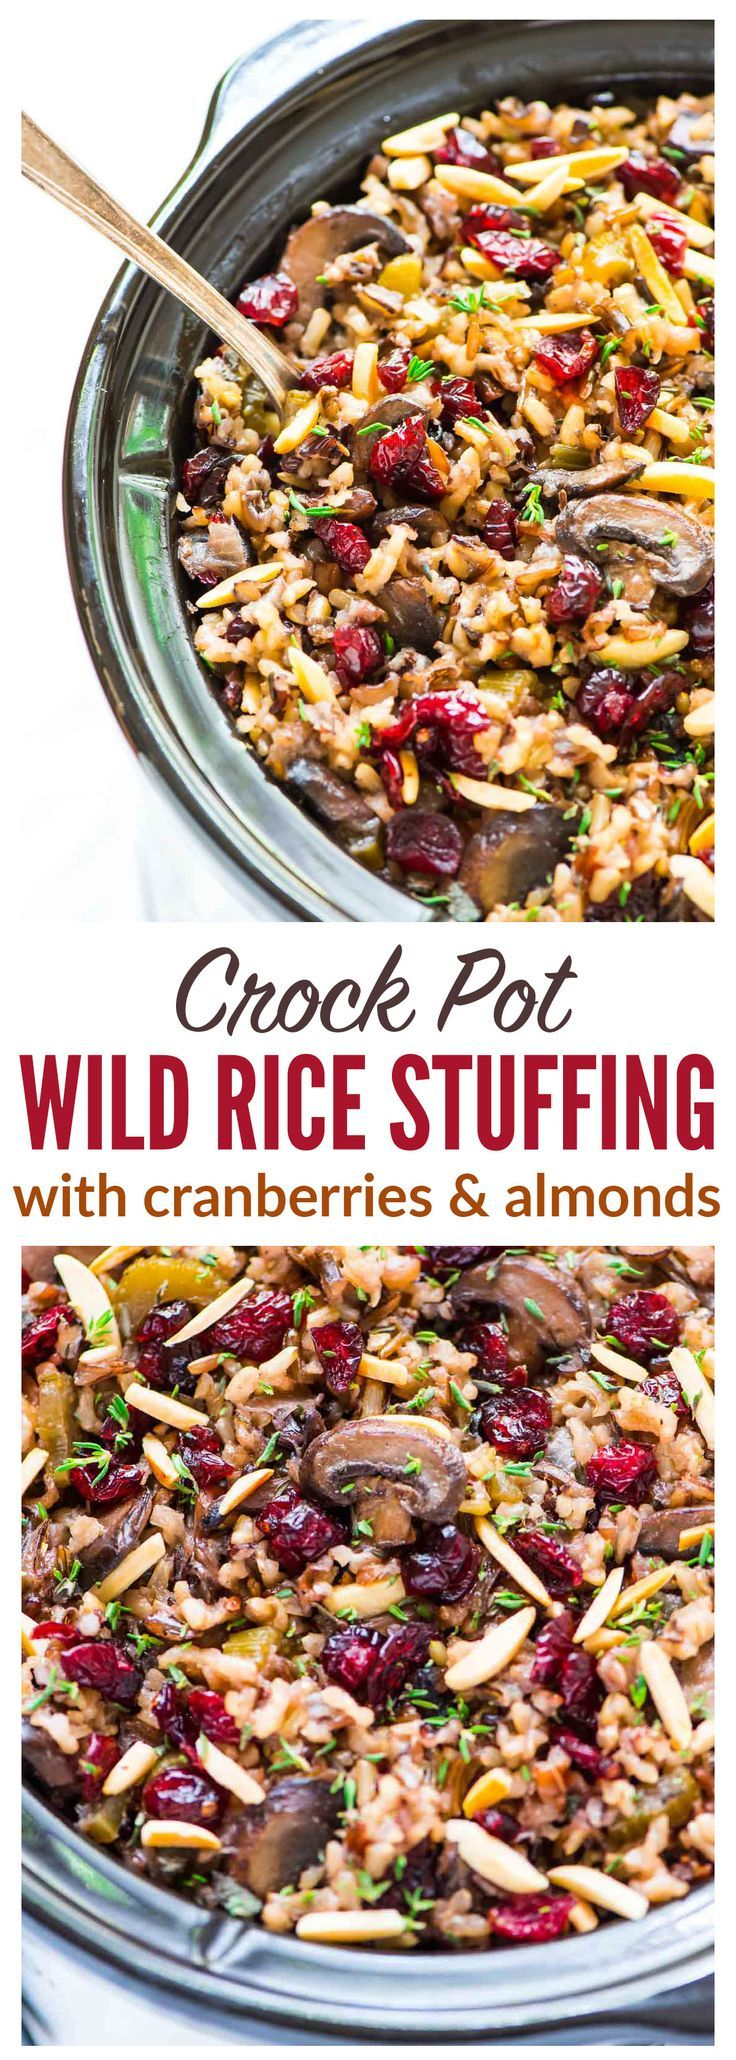 Free up the oven for Thanksgiving with this Crockpot Stuffing with Wild Rice and Cranberries. An easy, DELICIOUS gluten free stuffing recipe that everyone can enjoy! Simple, cozy slow cooker recipe th (Simple Gluten Free Recipes)